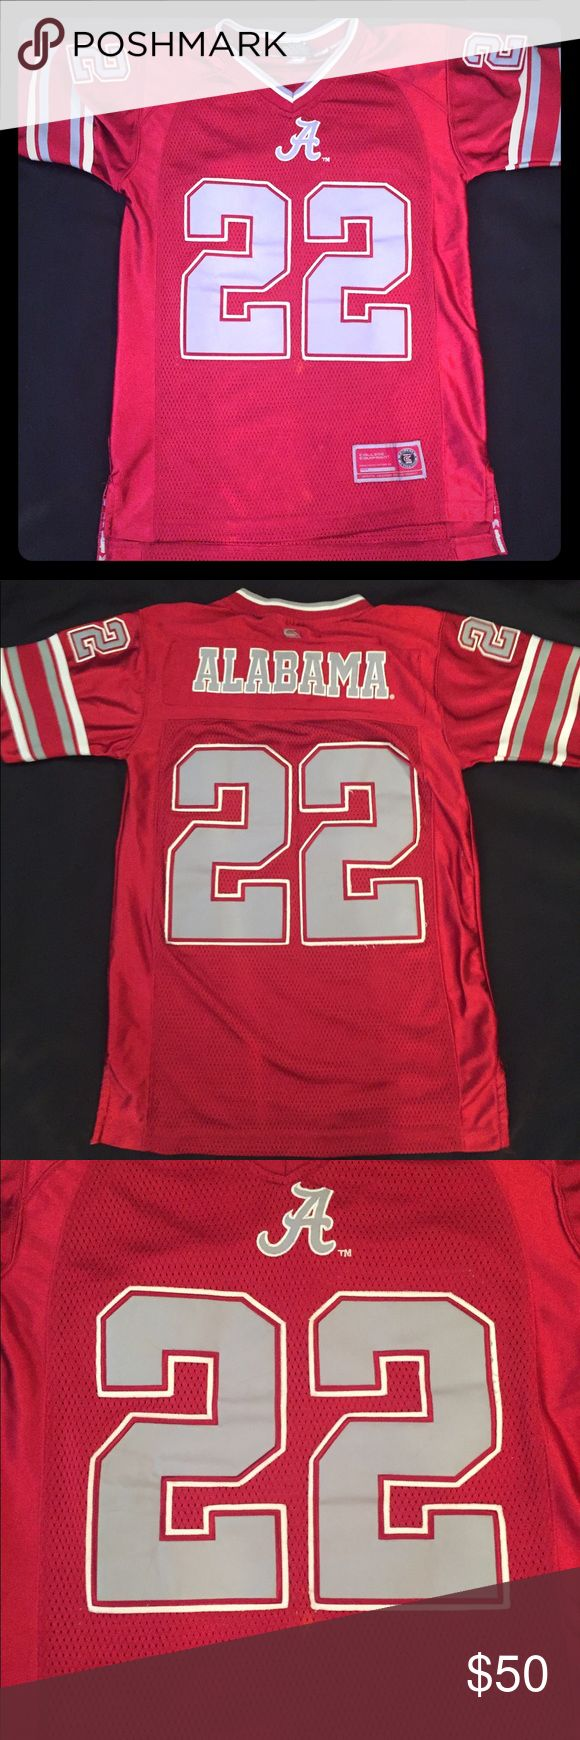 🏈ROLL TIDE ROLL🏈 ALABAMA #22 Jersey Youth Small 🏈ROLL TIDE ROLL🏈 ALABAMA #22 Jersey Youth Small. Used but in great condition. Youth small able to wear if women small. SEC football championship jersey Tops